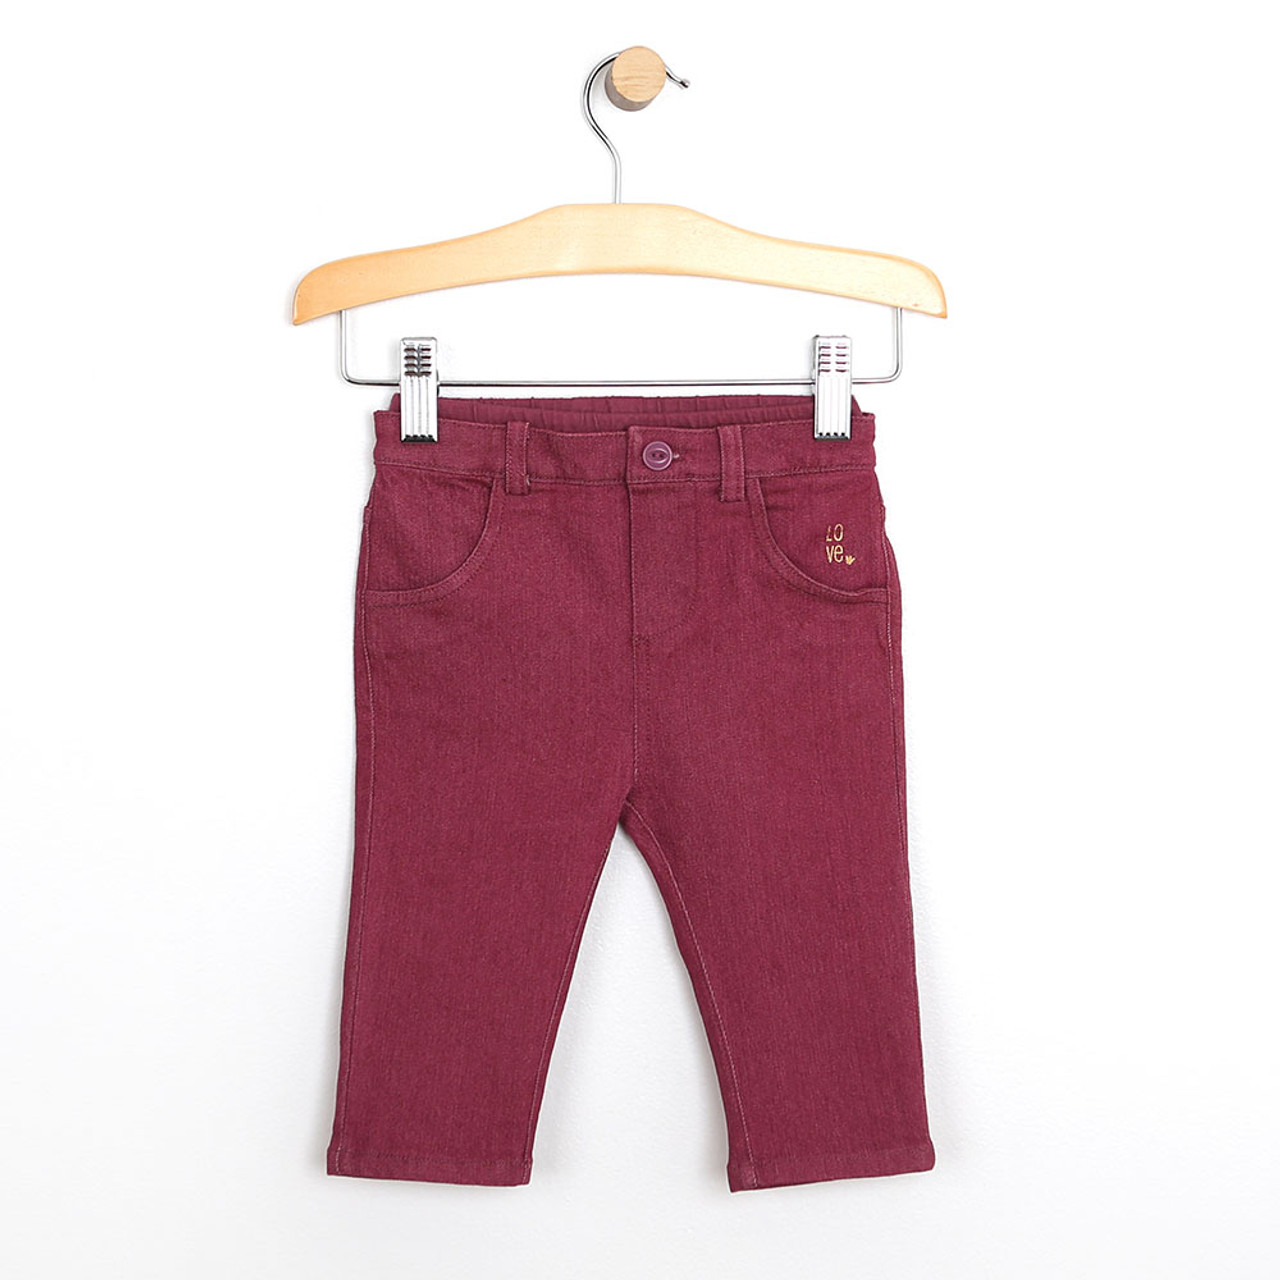 1adca1ae309bad Baby Pants, Super Soft Jeans, Maroon: Girls, Baby, Infant, Toddler ...